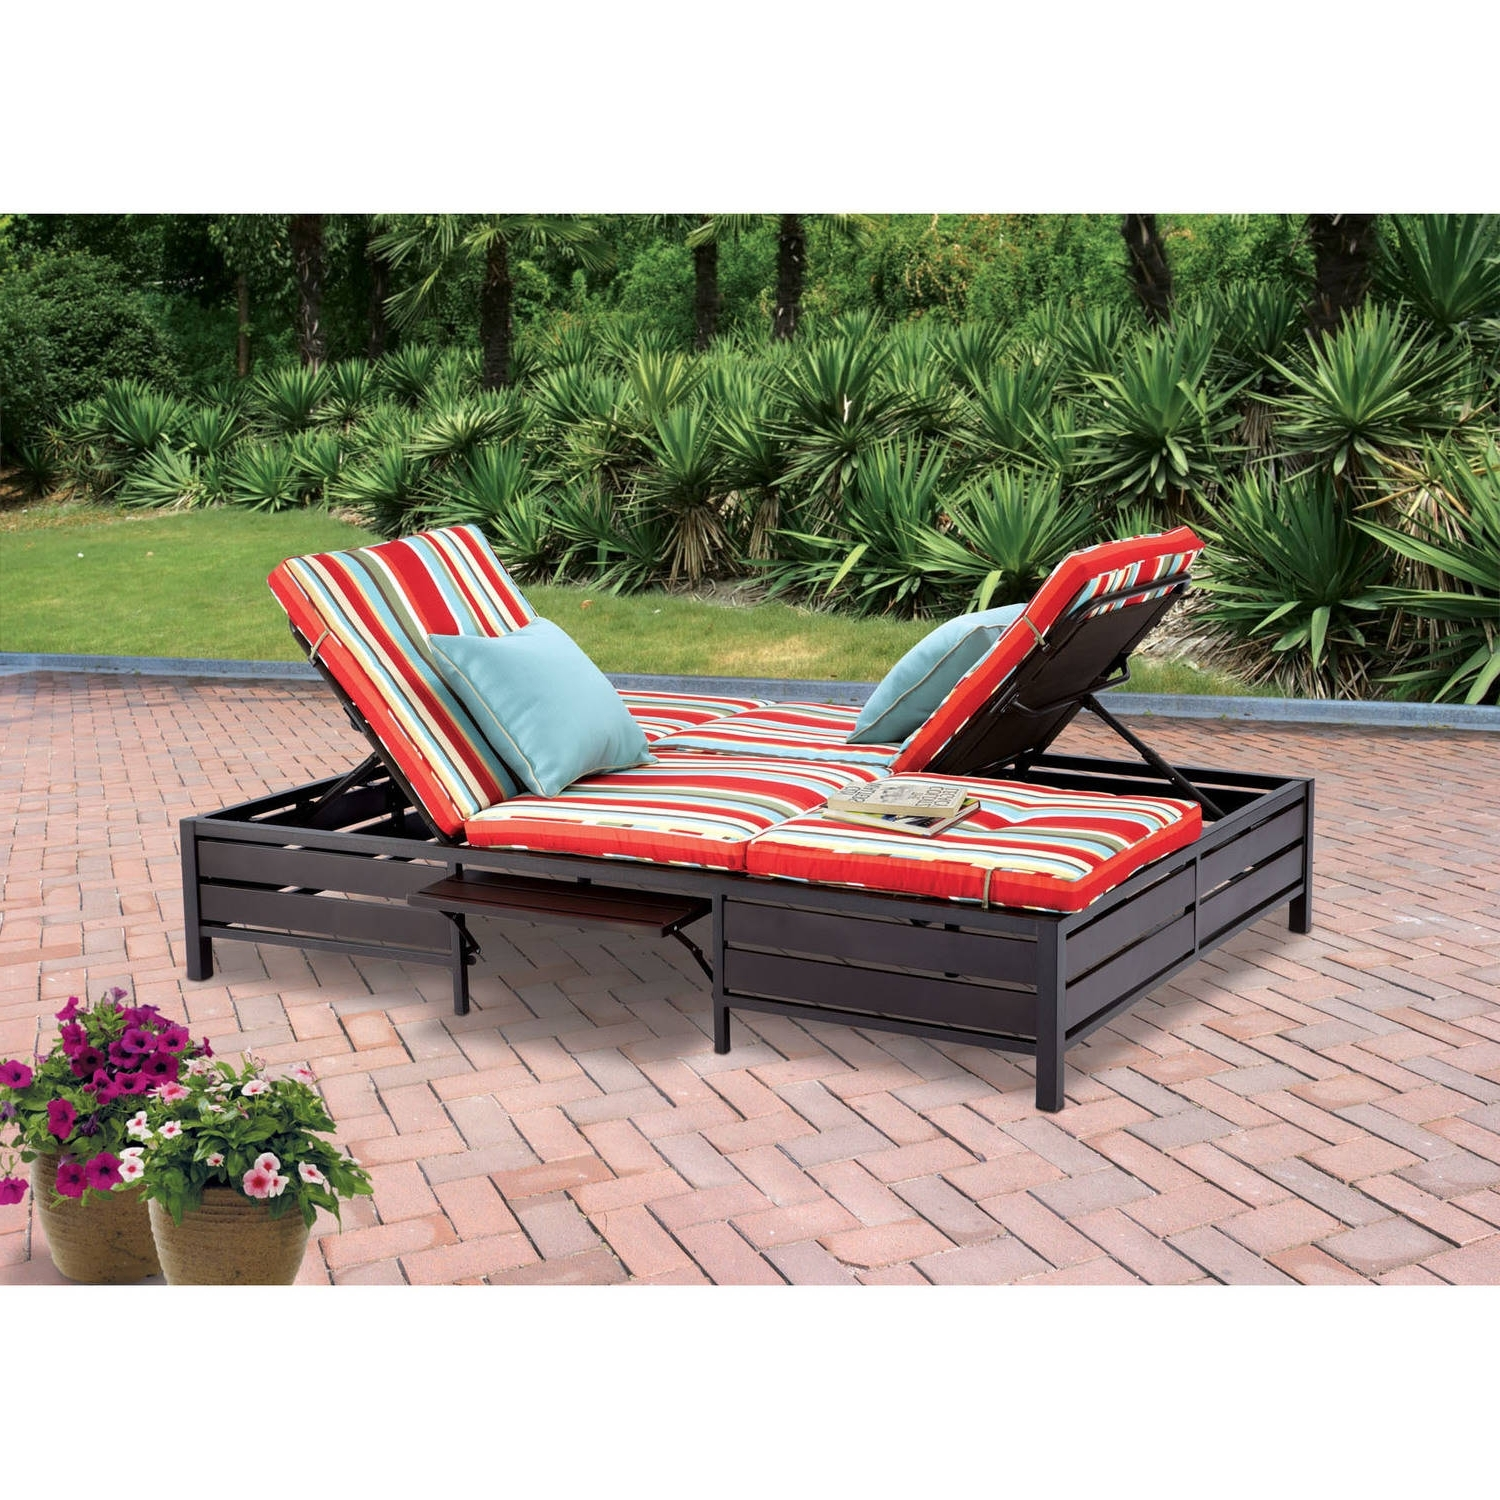 Fashionable Walmart Chaise Lounge Cushions With Mainstays Outdoor Double Chaise Lounger, Stripe, Seats 2 – Walmart (View 2 of 15)